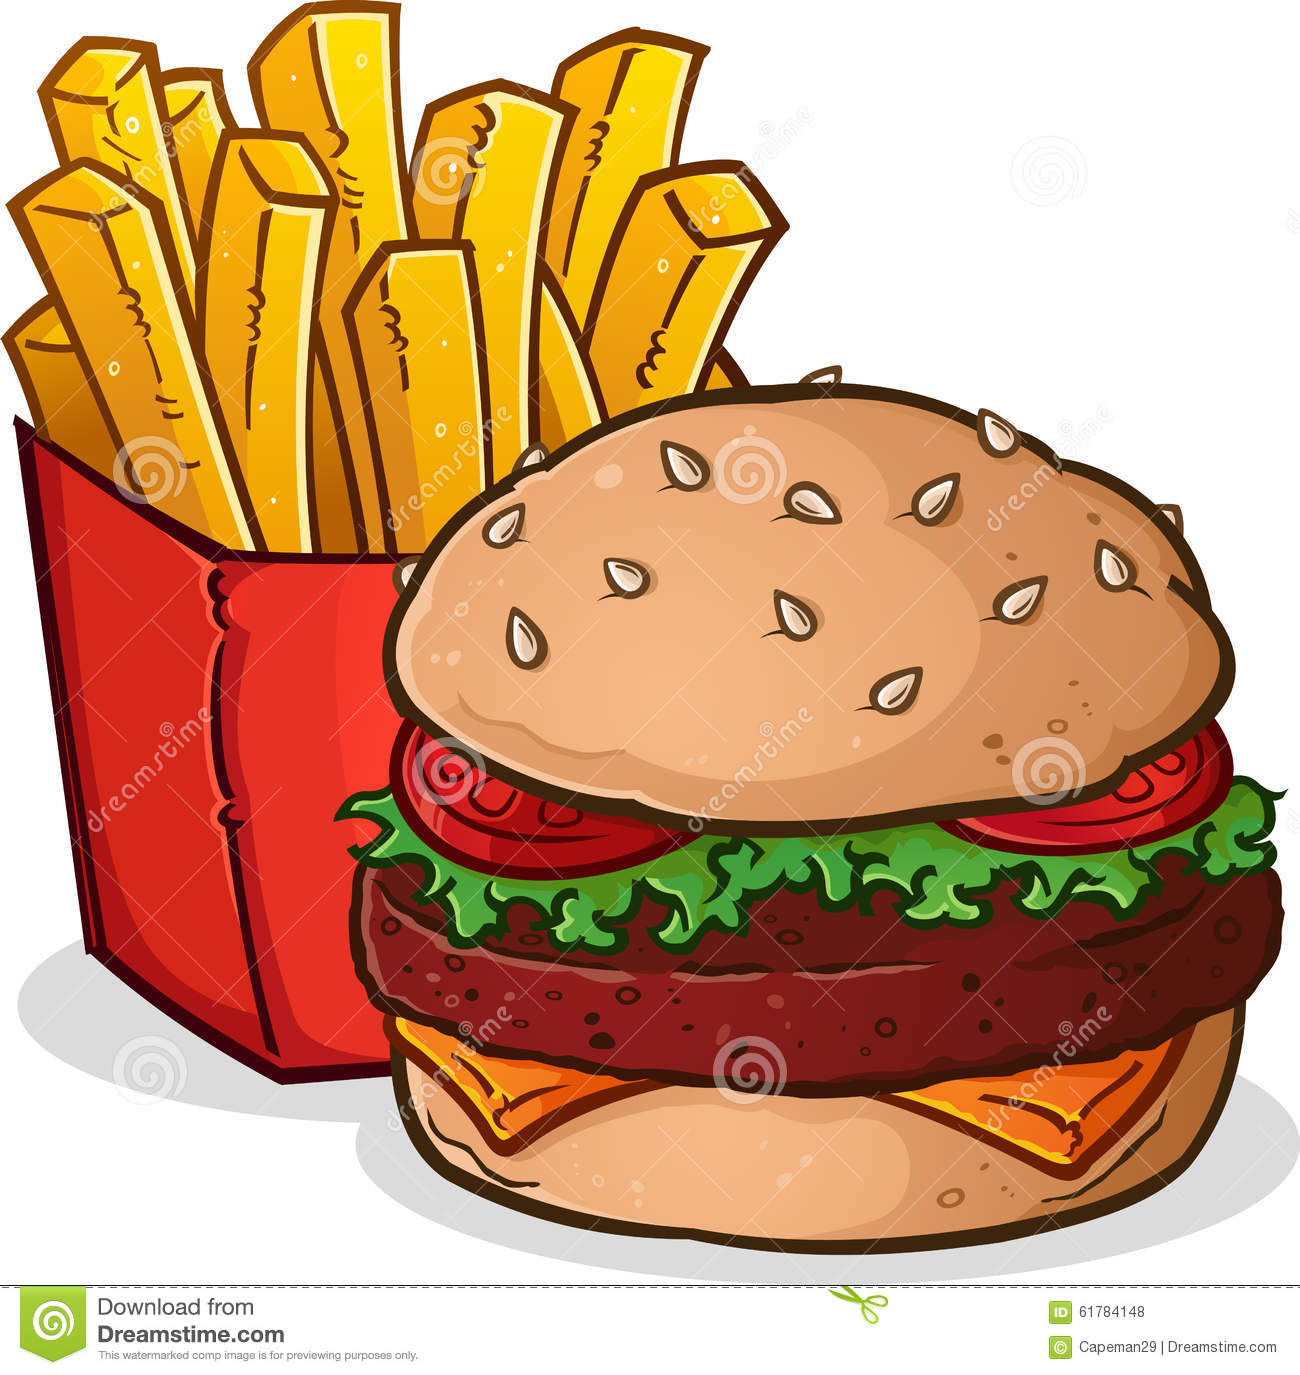 Cheeseburger Clipart | Chadholtz